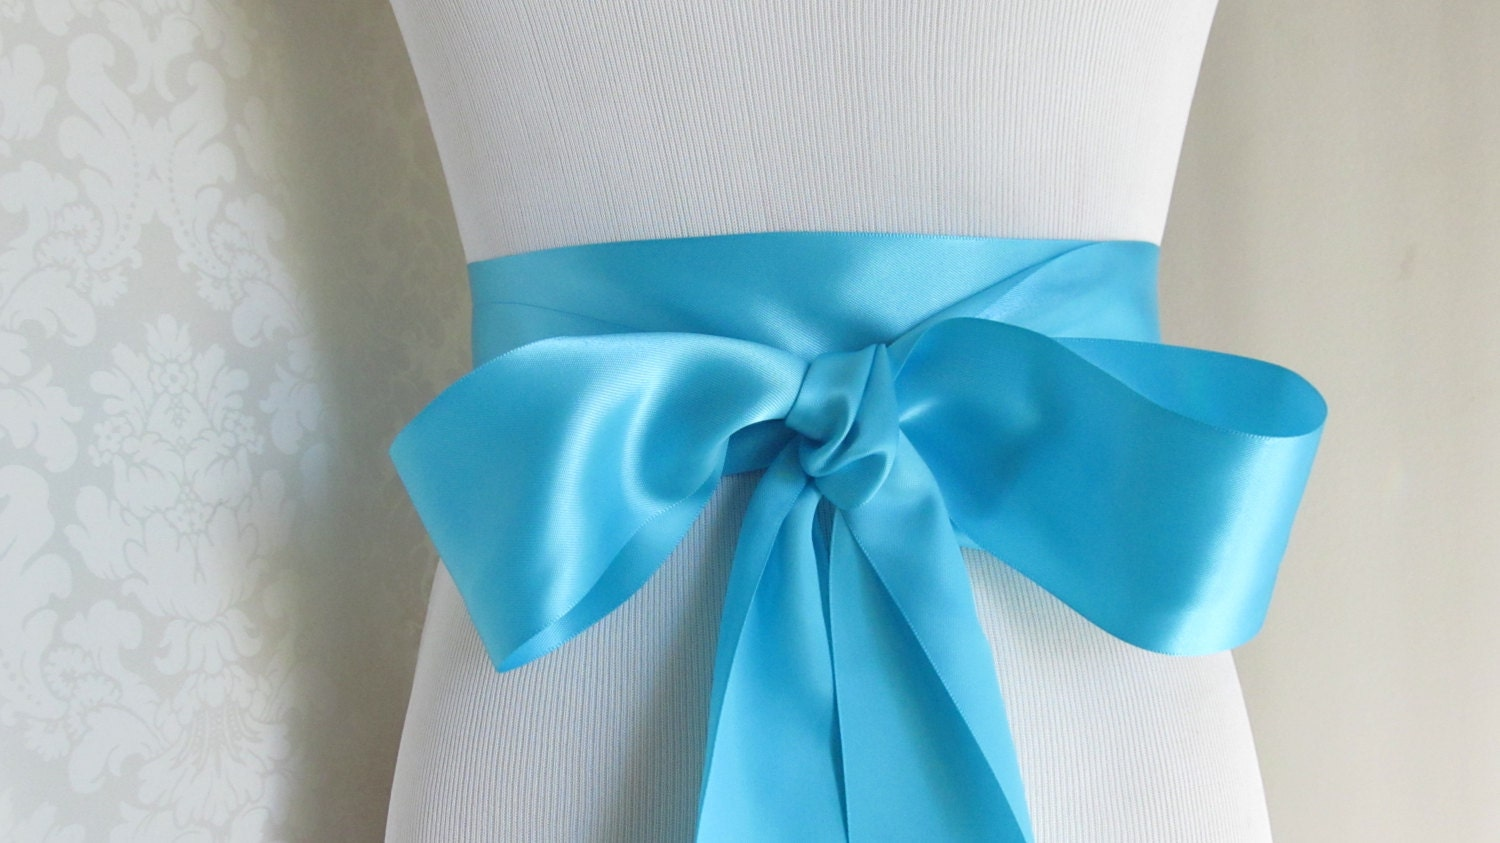 Eight of foam and satin ribbons